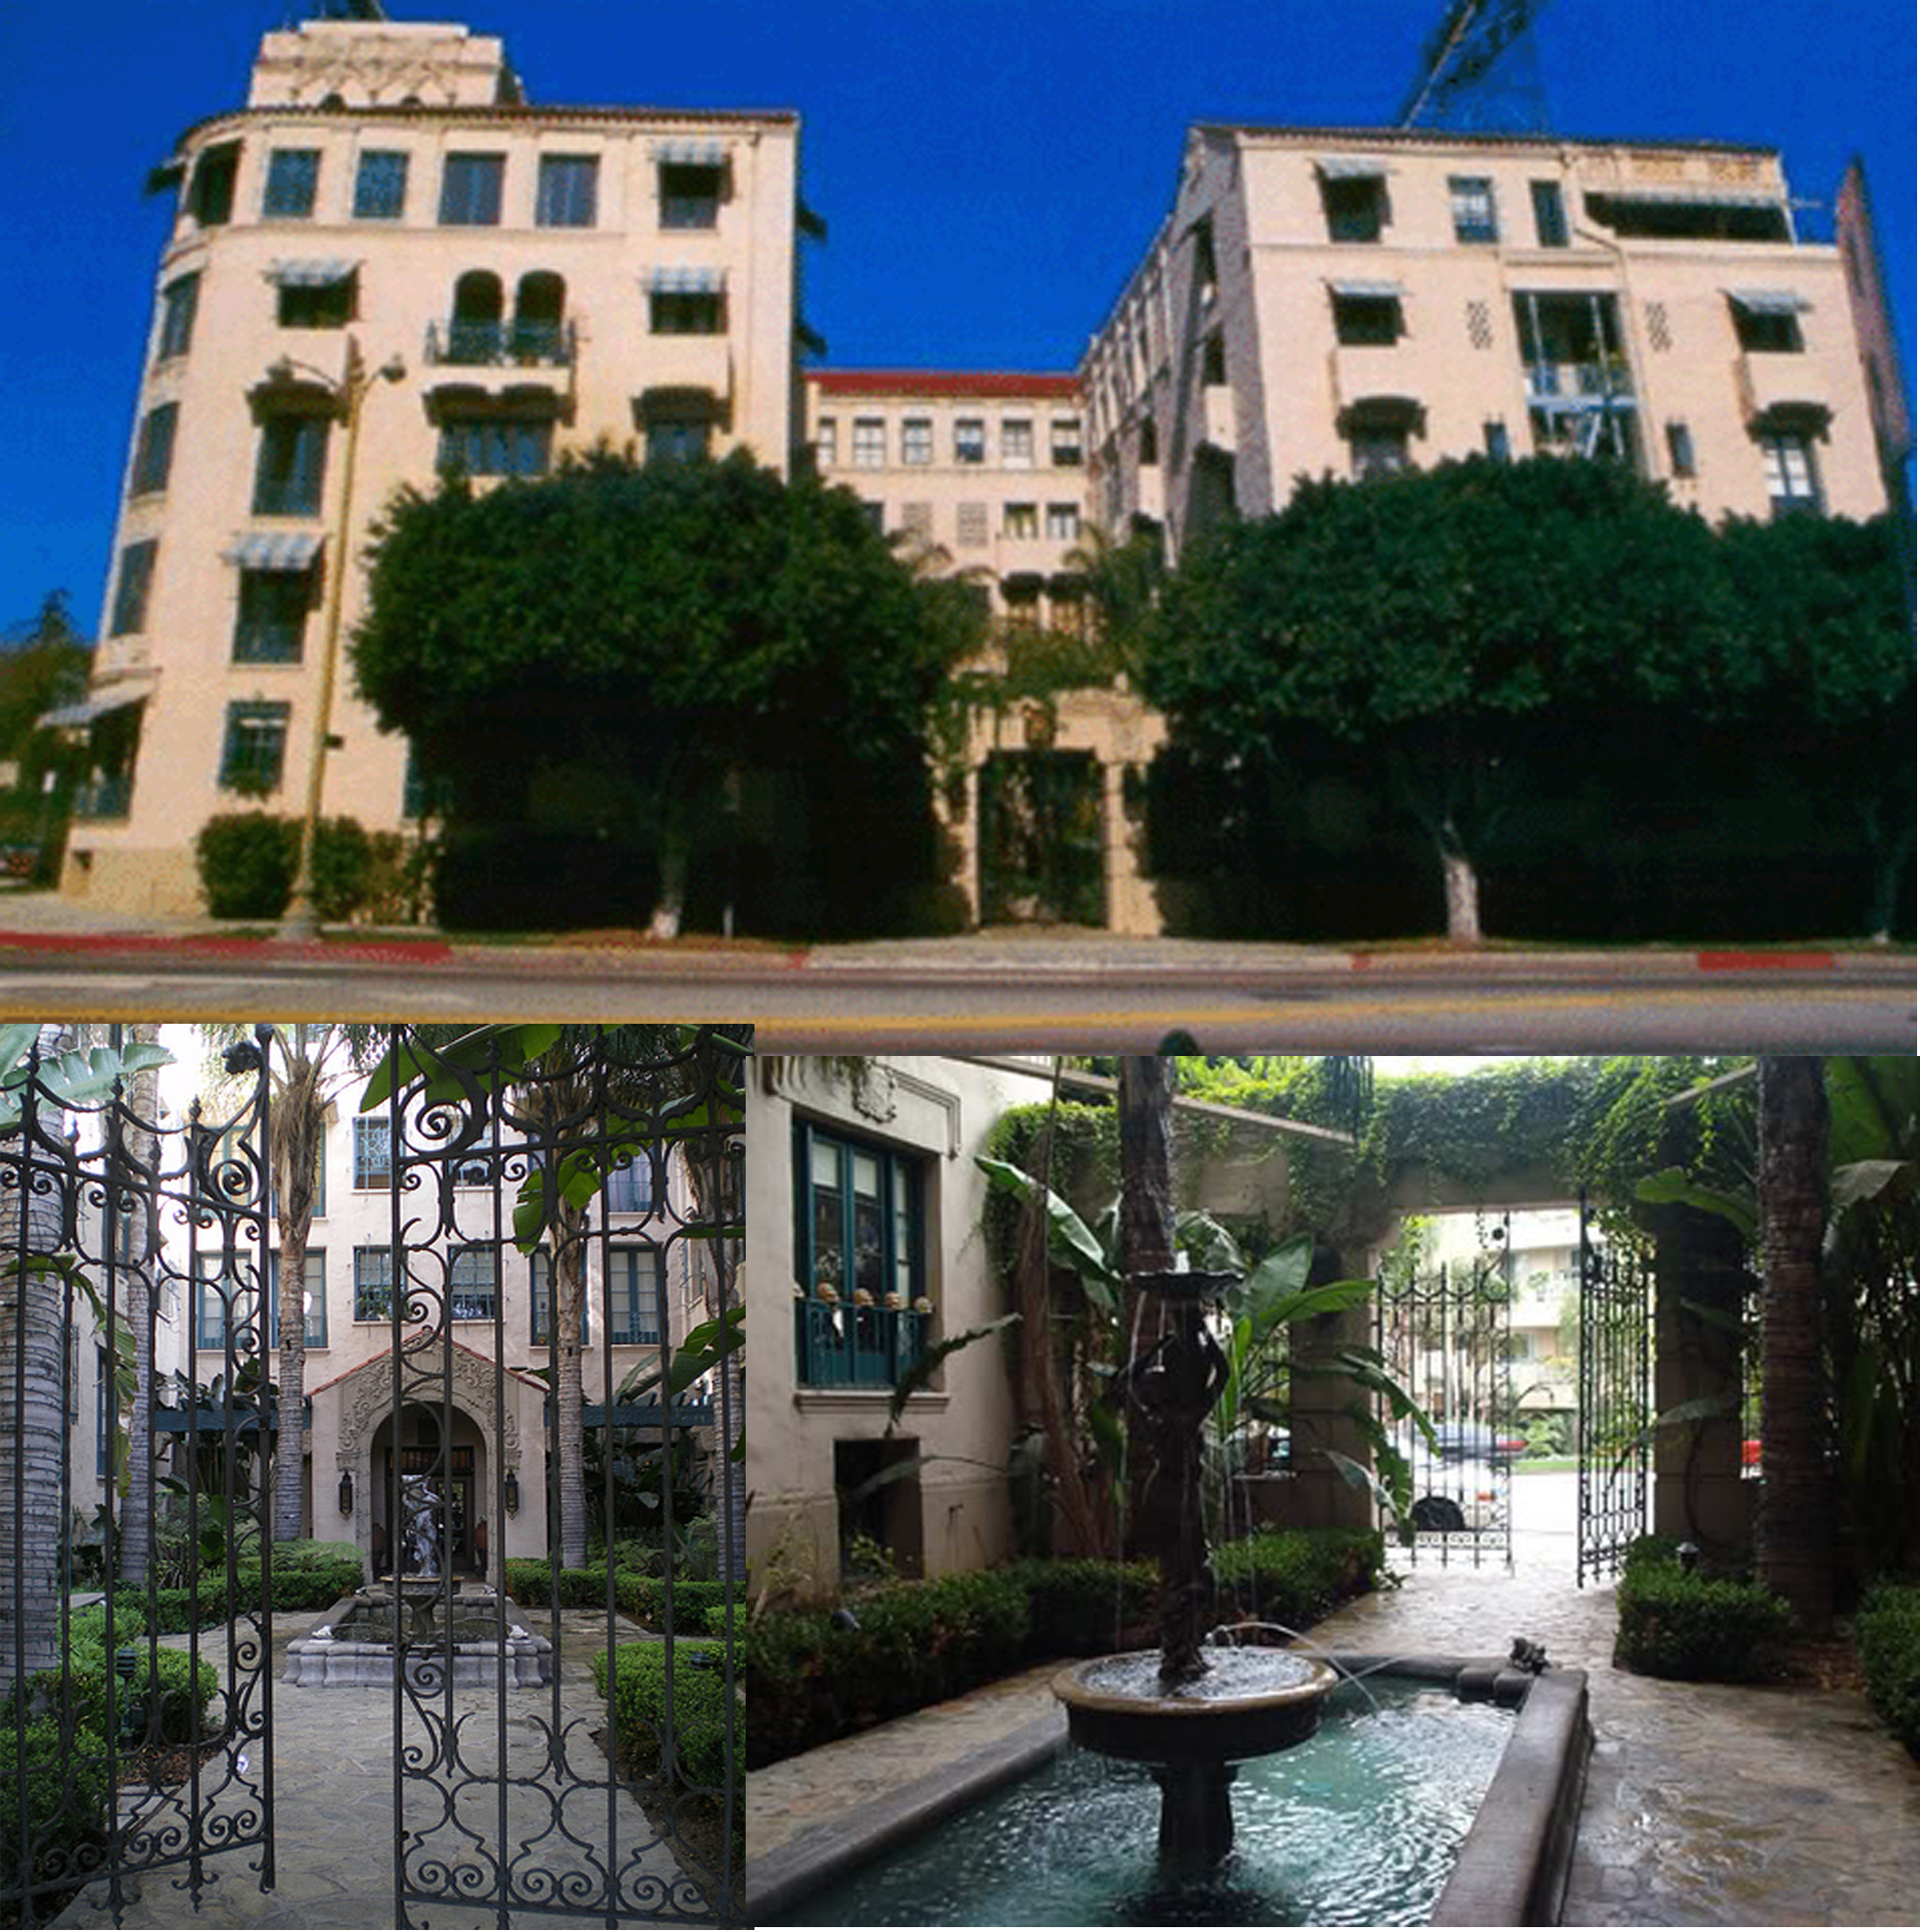 Hyperion Hotel from TV Series Angel In reality the Los Altos Hotel